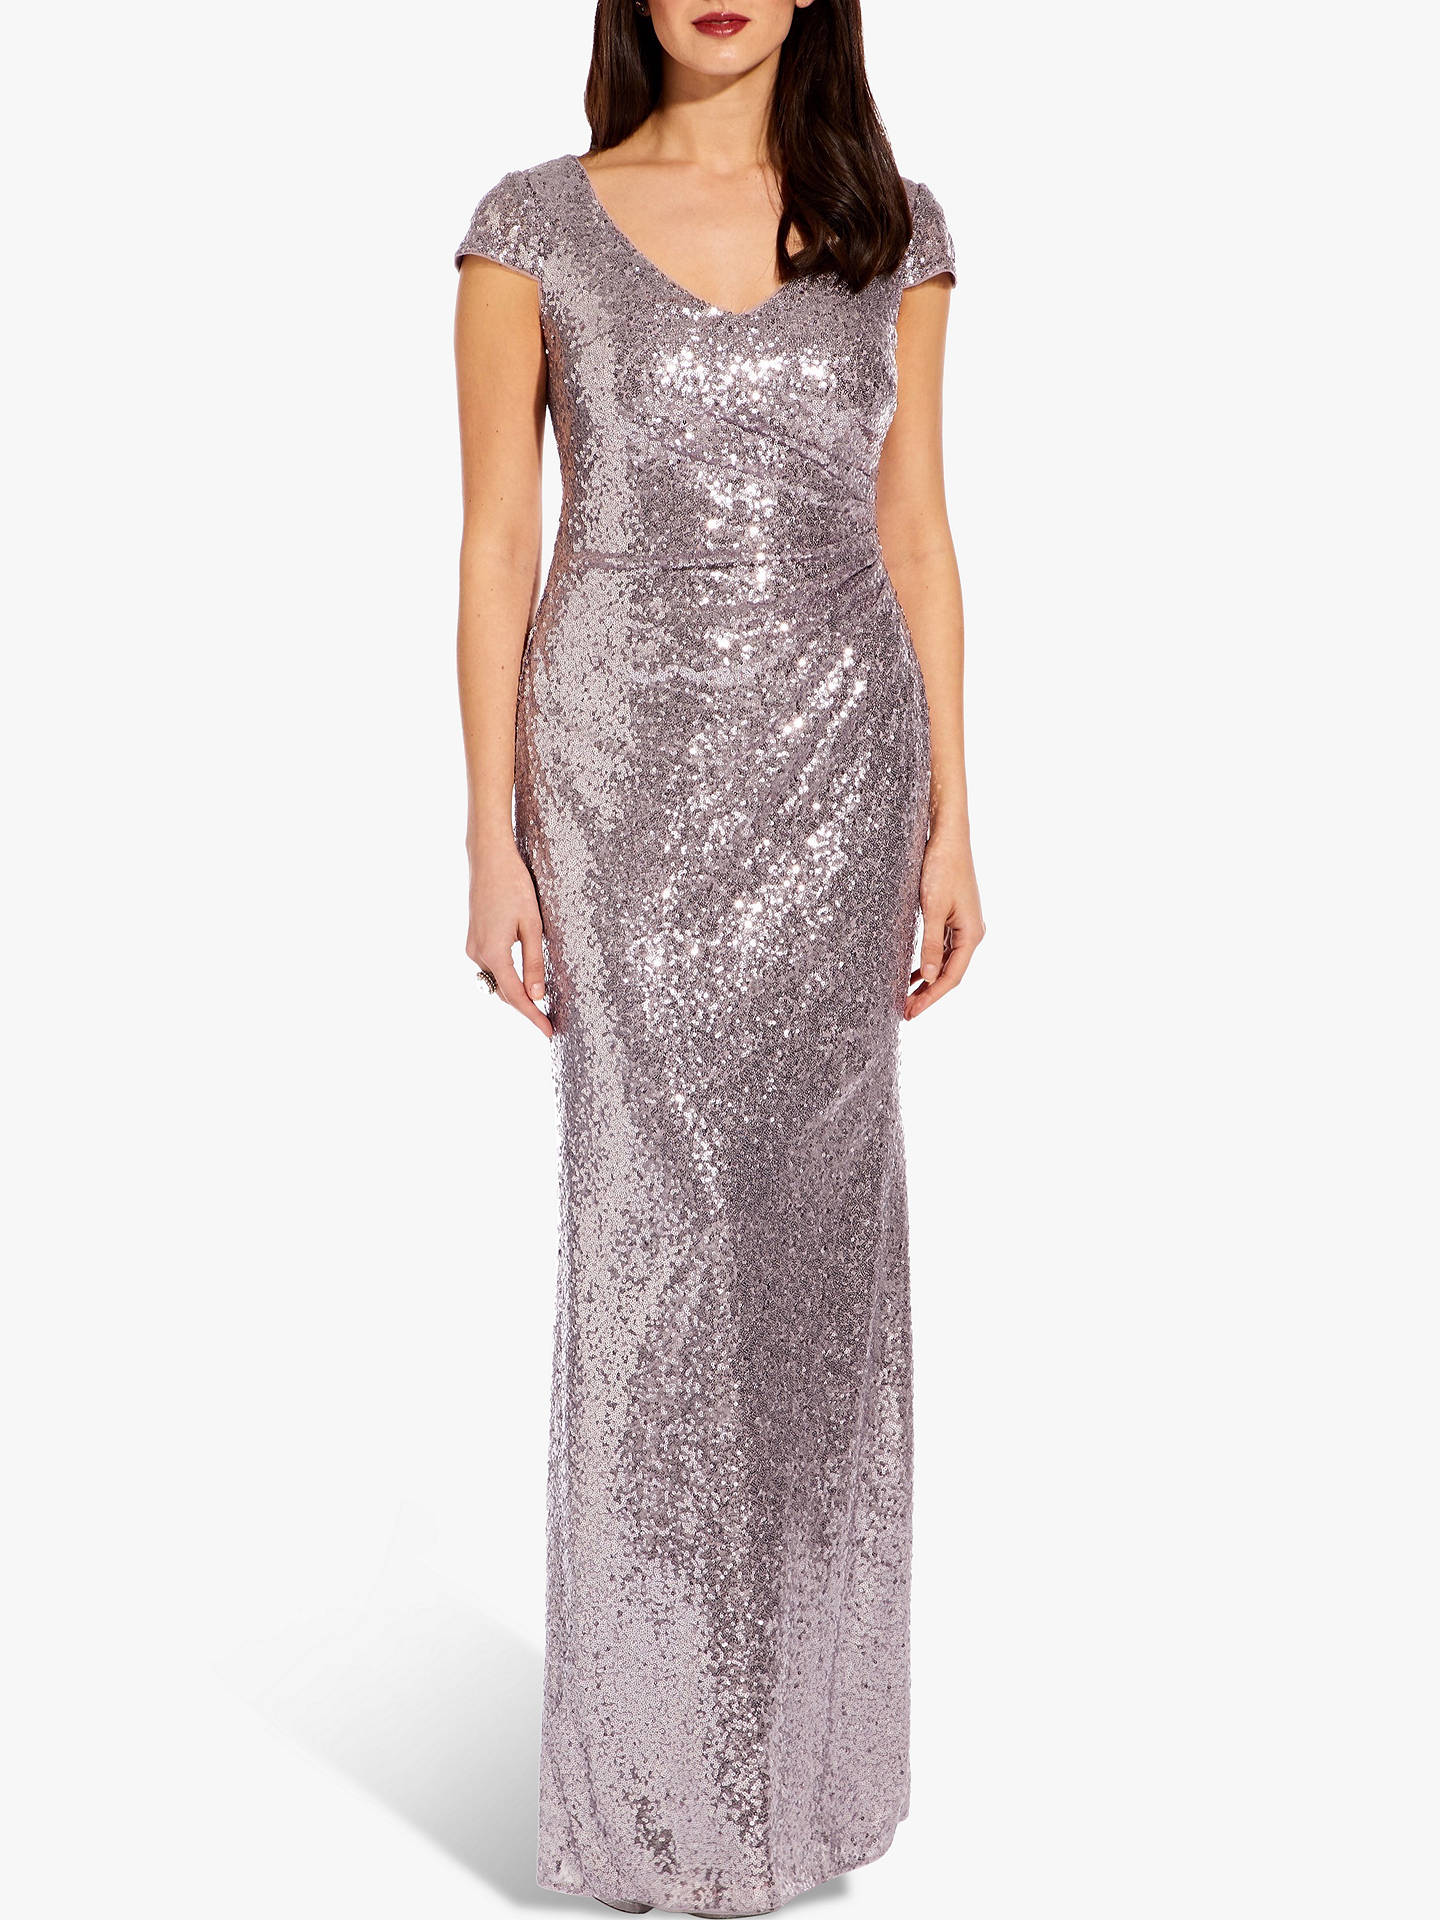 Buy Adrianna Papell Cap Sleeve Sequin Dress, Lilac Grey, 8 Online at johnlewis.